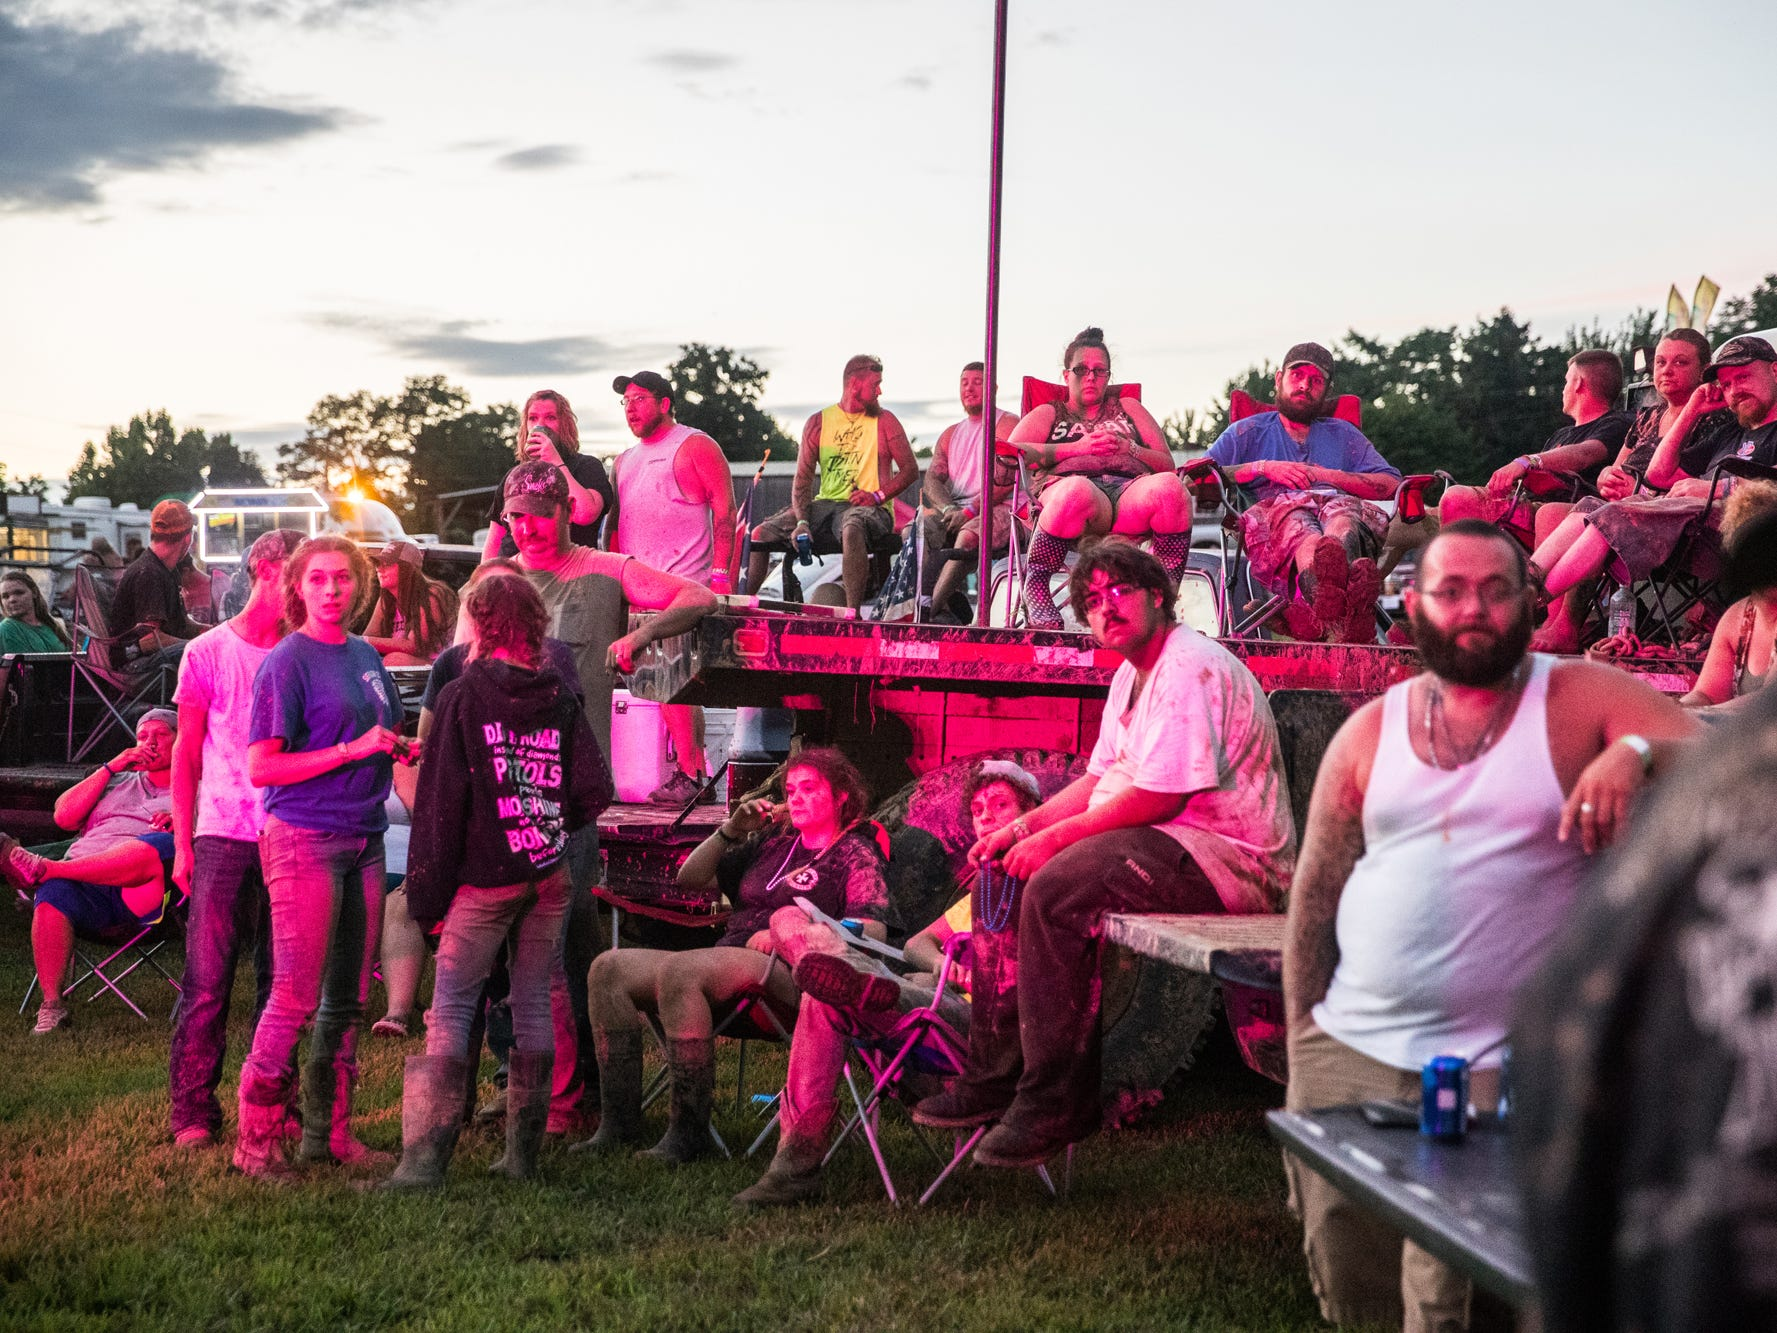 After a day of mudding during the Redneck Rave at BlackSwan Mudpit in Medora, Ind., attendees park their ATV's and trucks near the music stage on Friday, July 20, 2018.